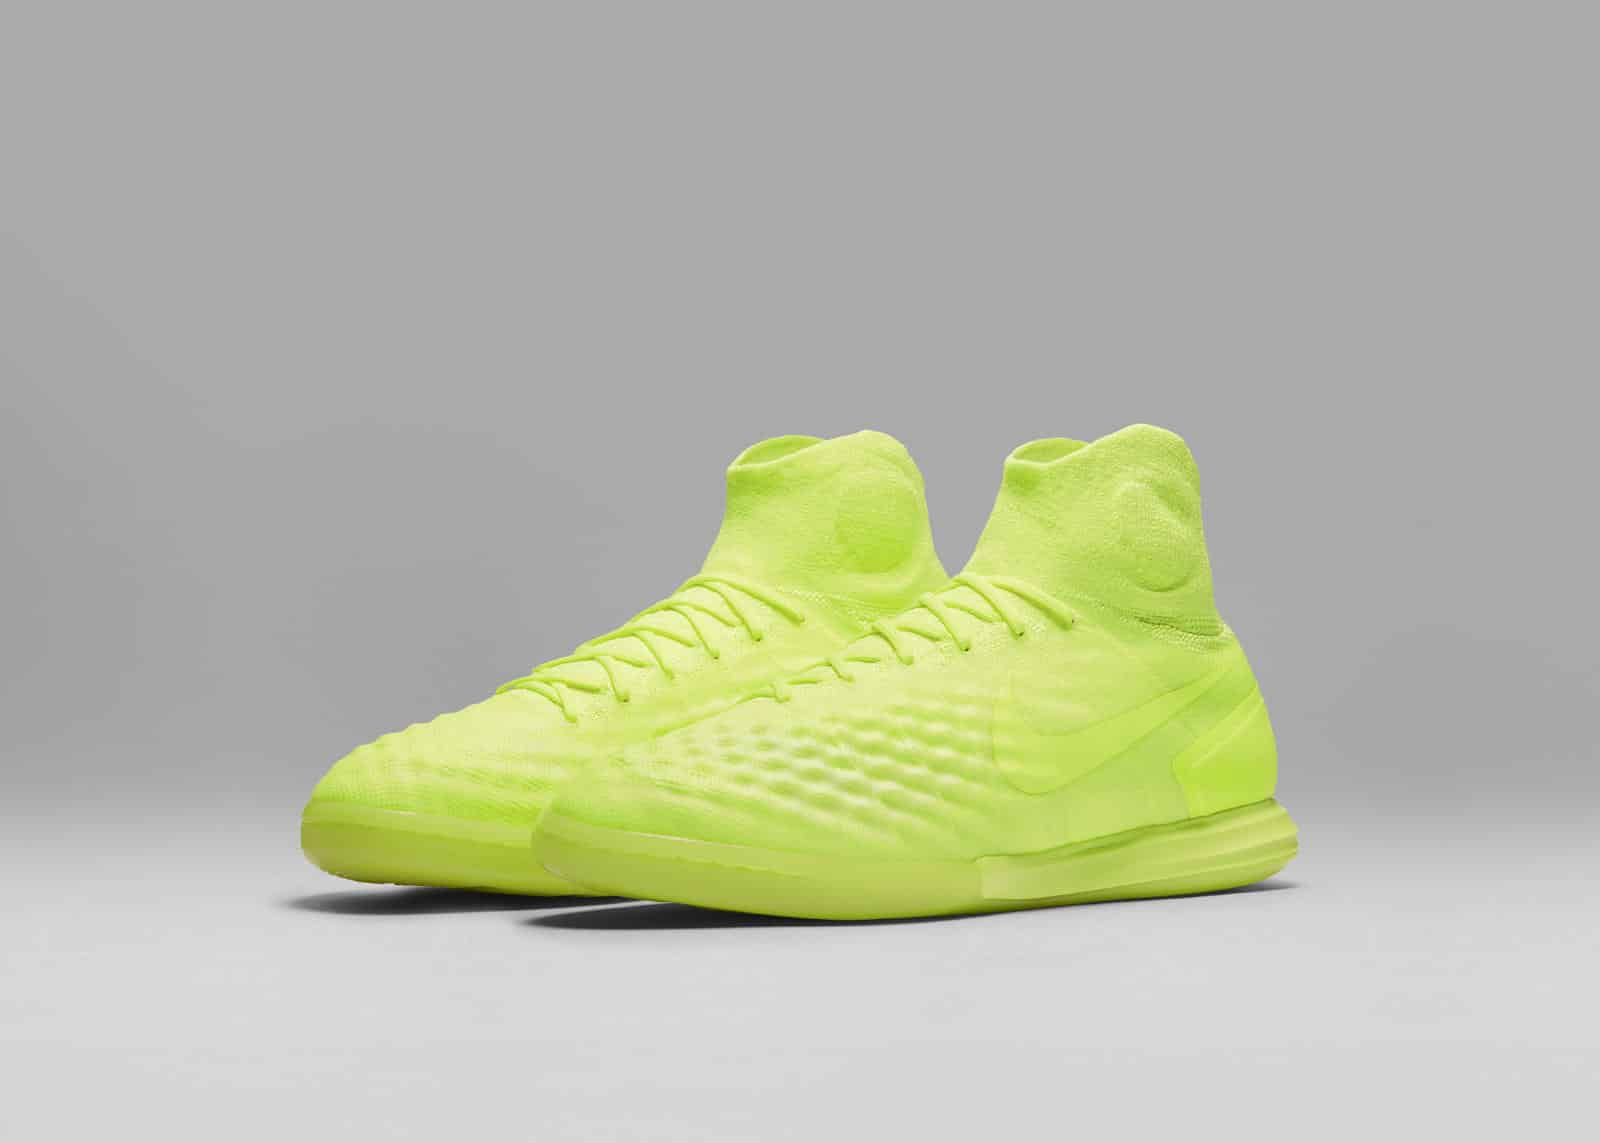 chaussure-foot-nike-magistax-proximo-pack-floodlight-glow-fluorescent-2016